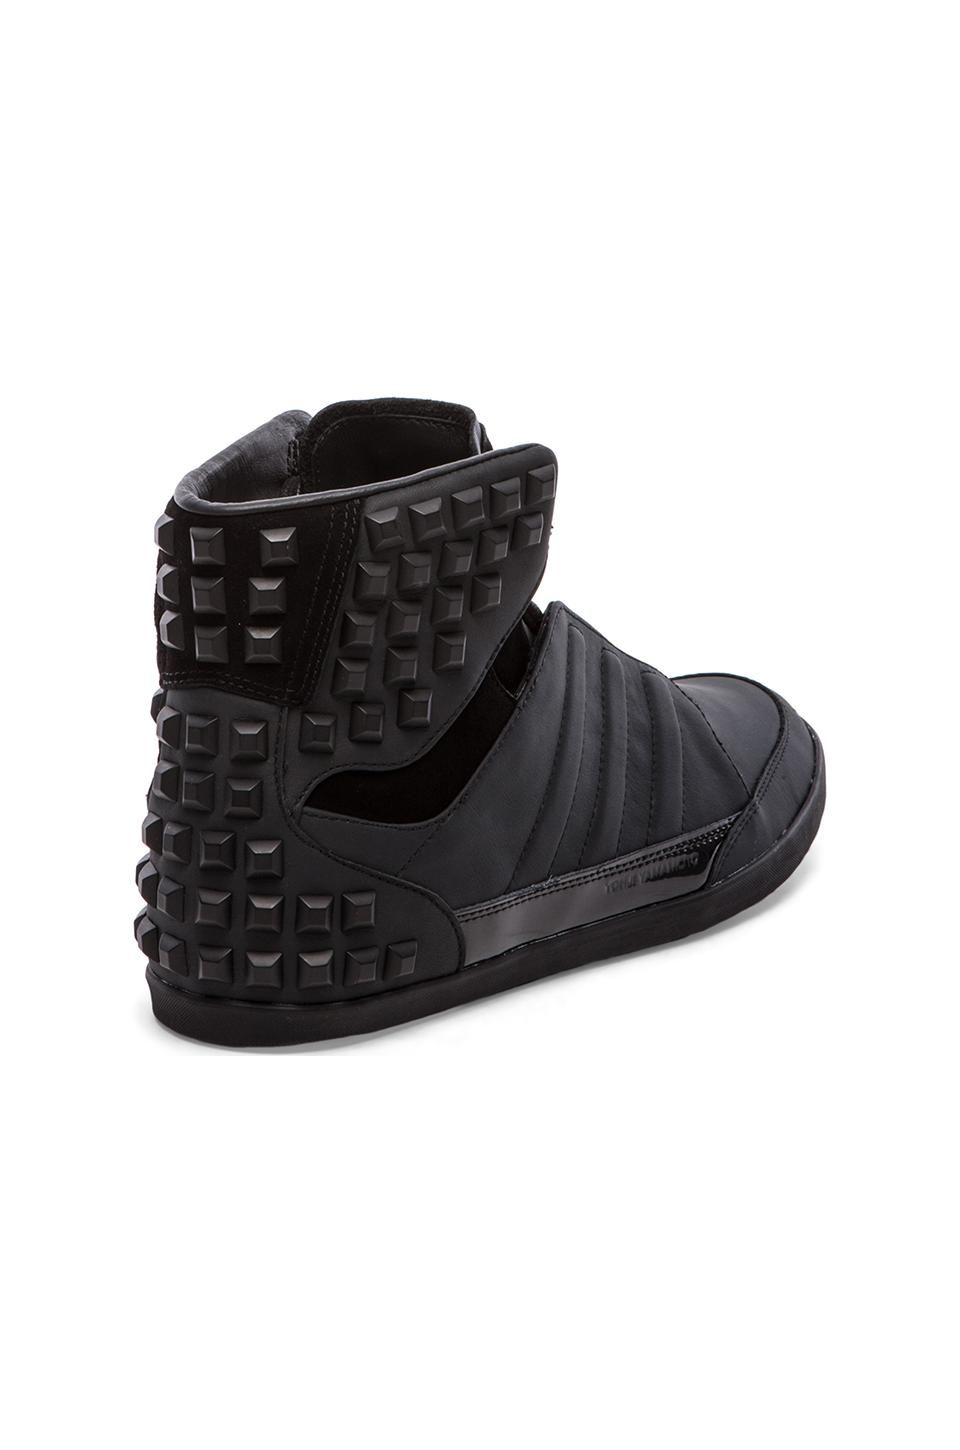 dc5802c5ace4b adidas Y-3 Yohji Honja High  Black studded   Accessories   Pinterest ...